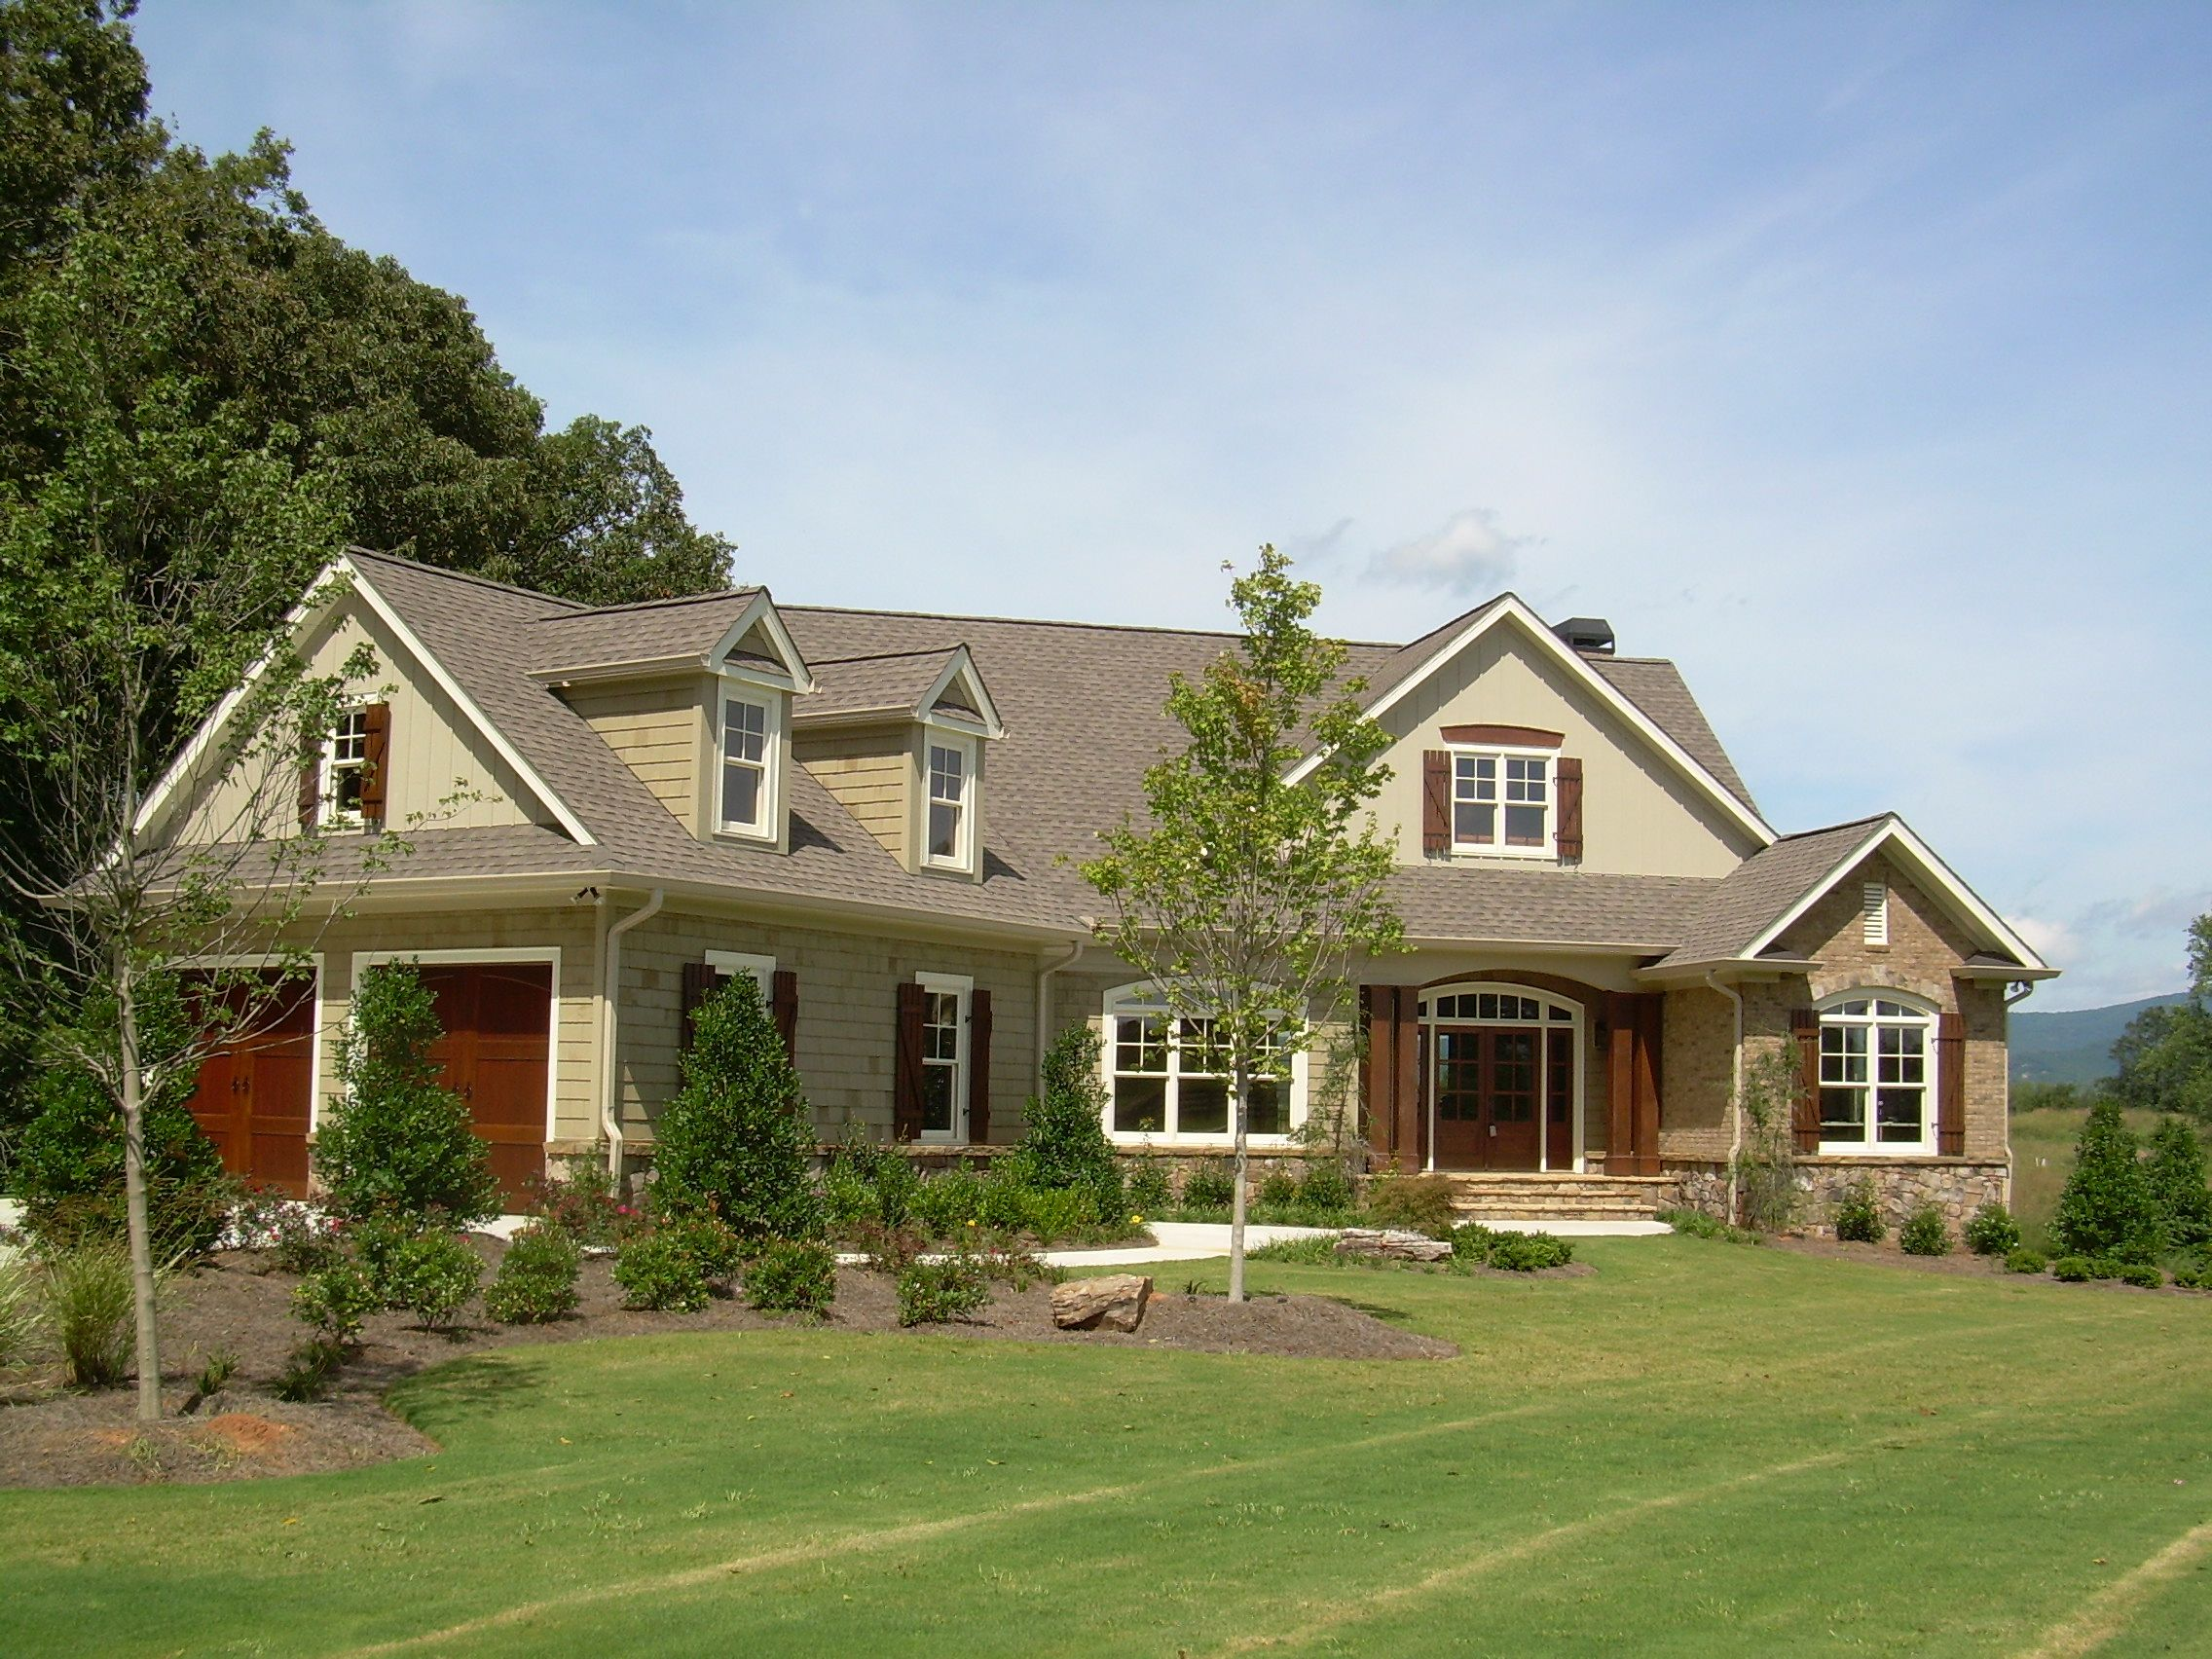 House With Stone Accent Front And Side Entry Garage House Front House Exterior Exterior House Colors